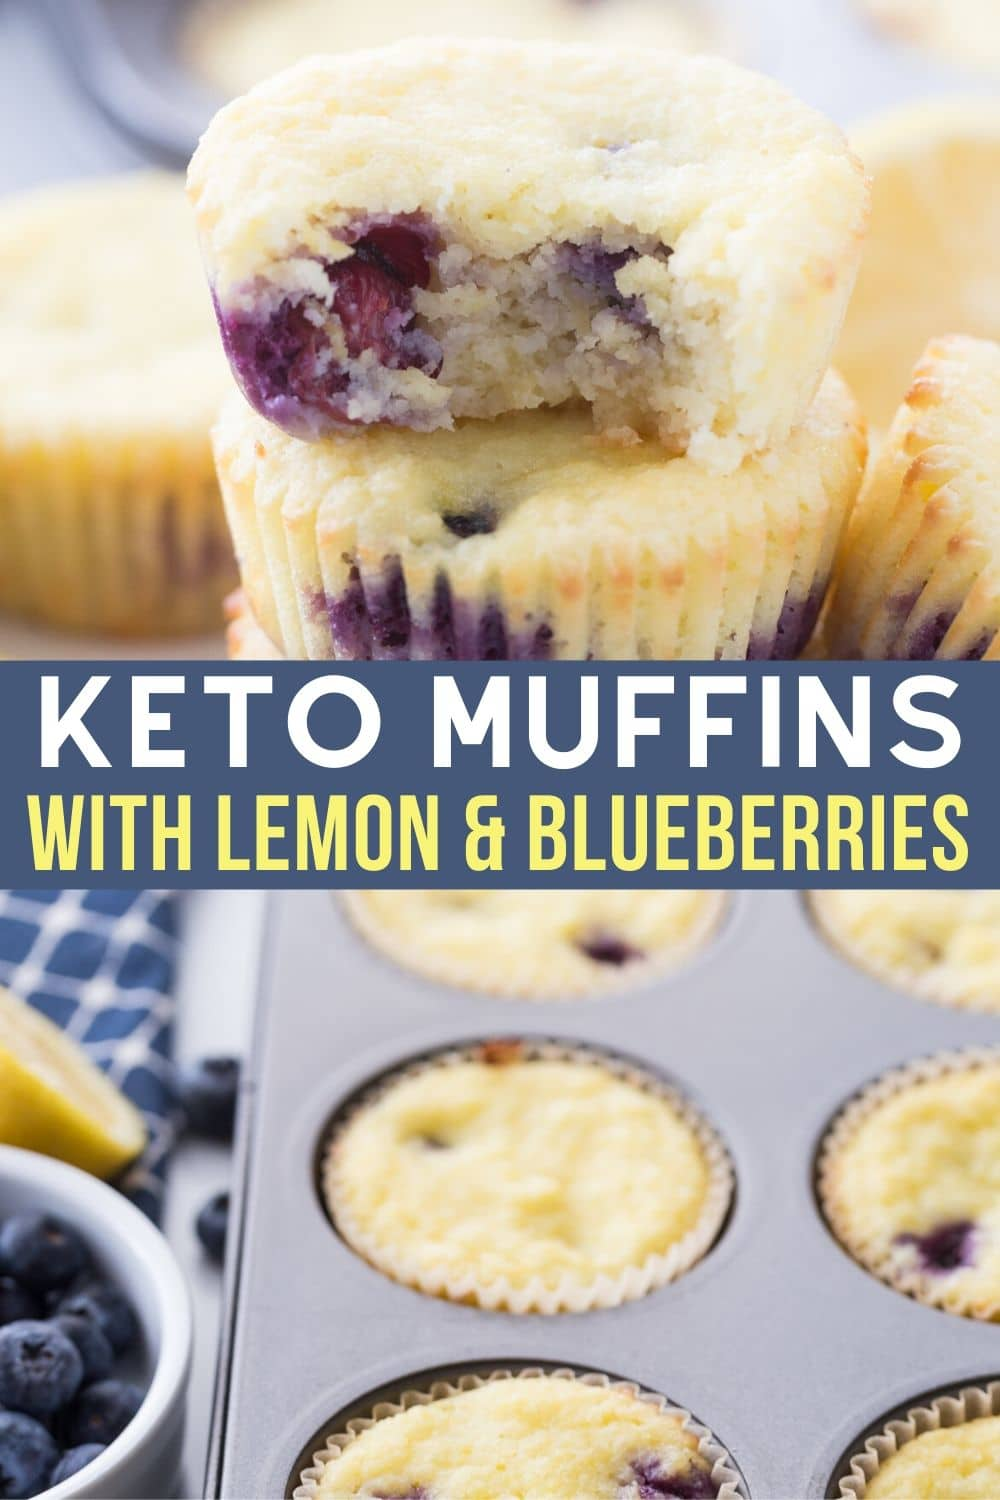 blueberry lemon keto muffins in a muffin tin